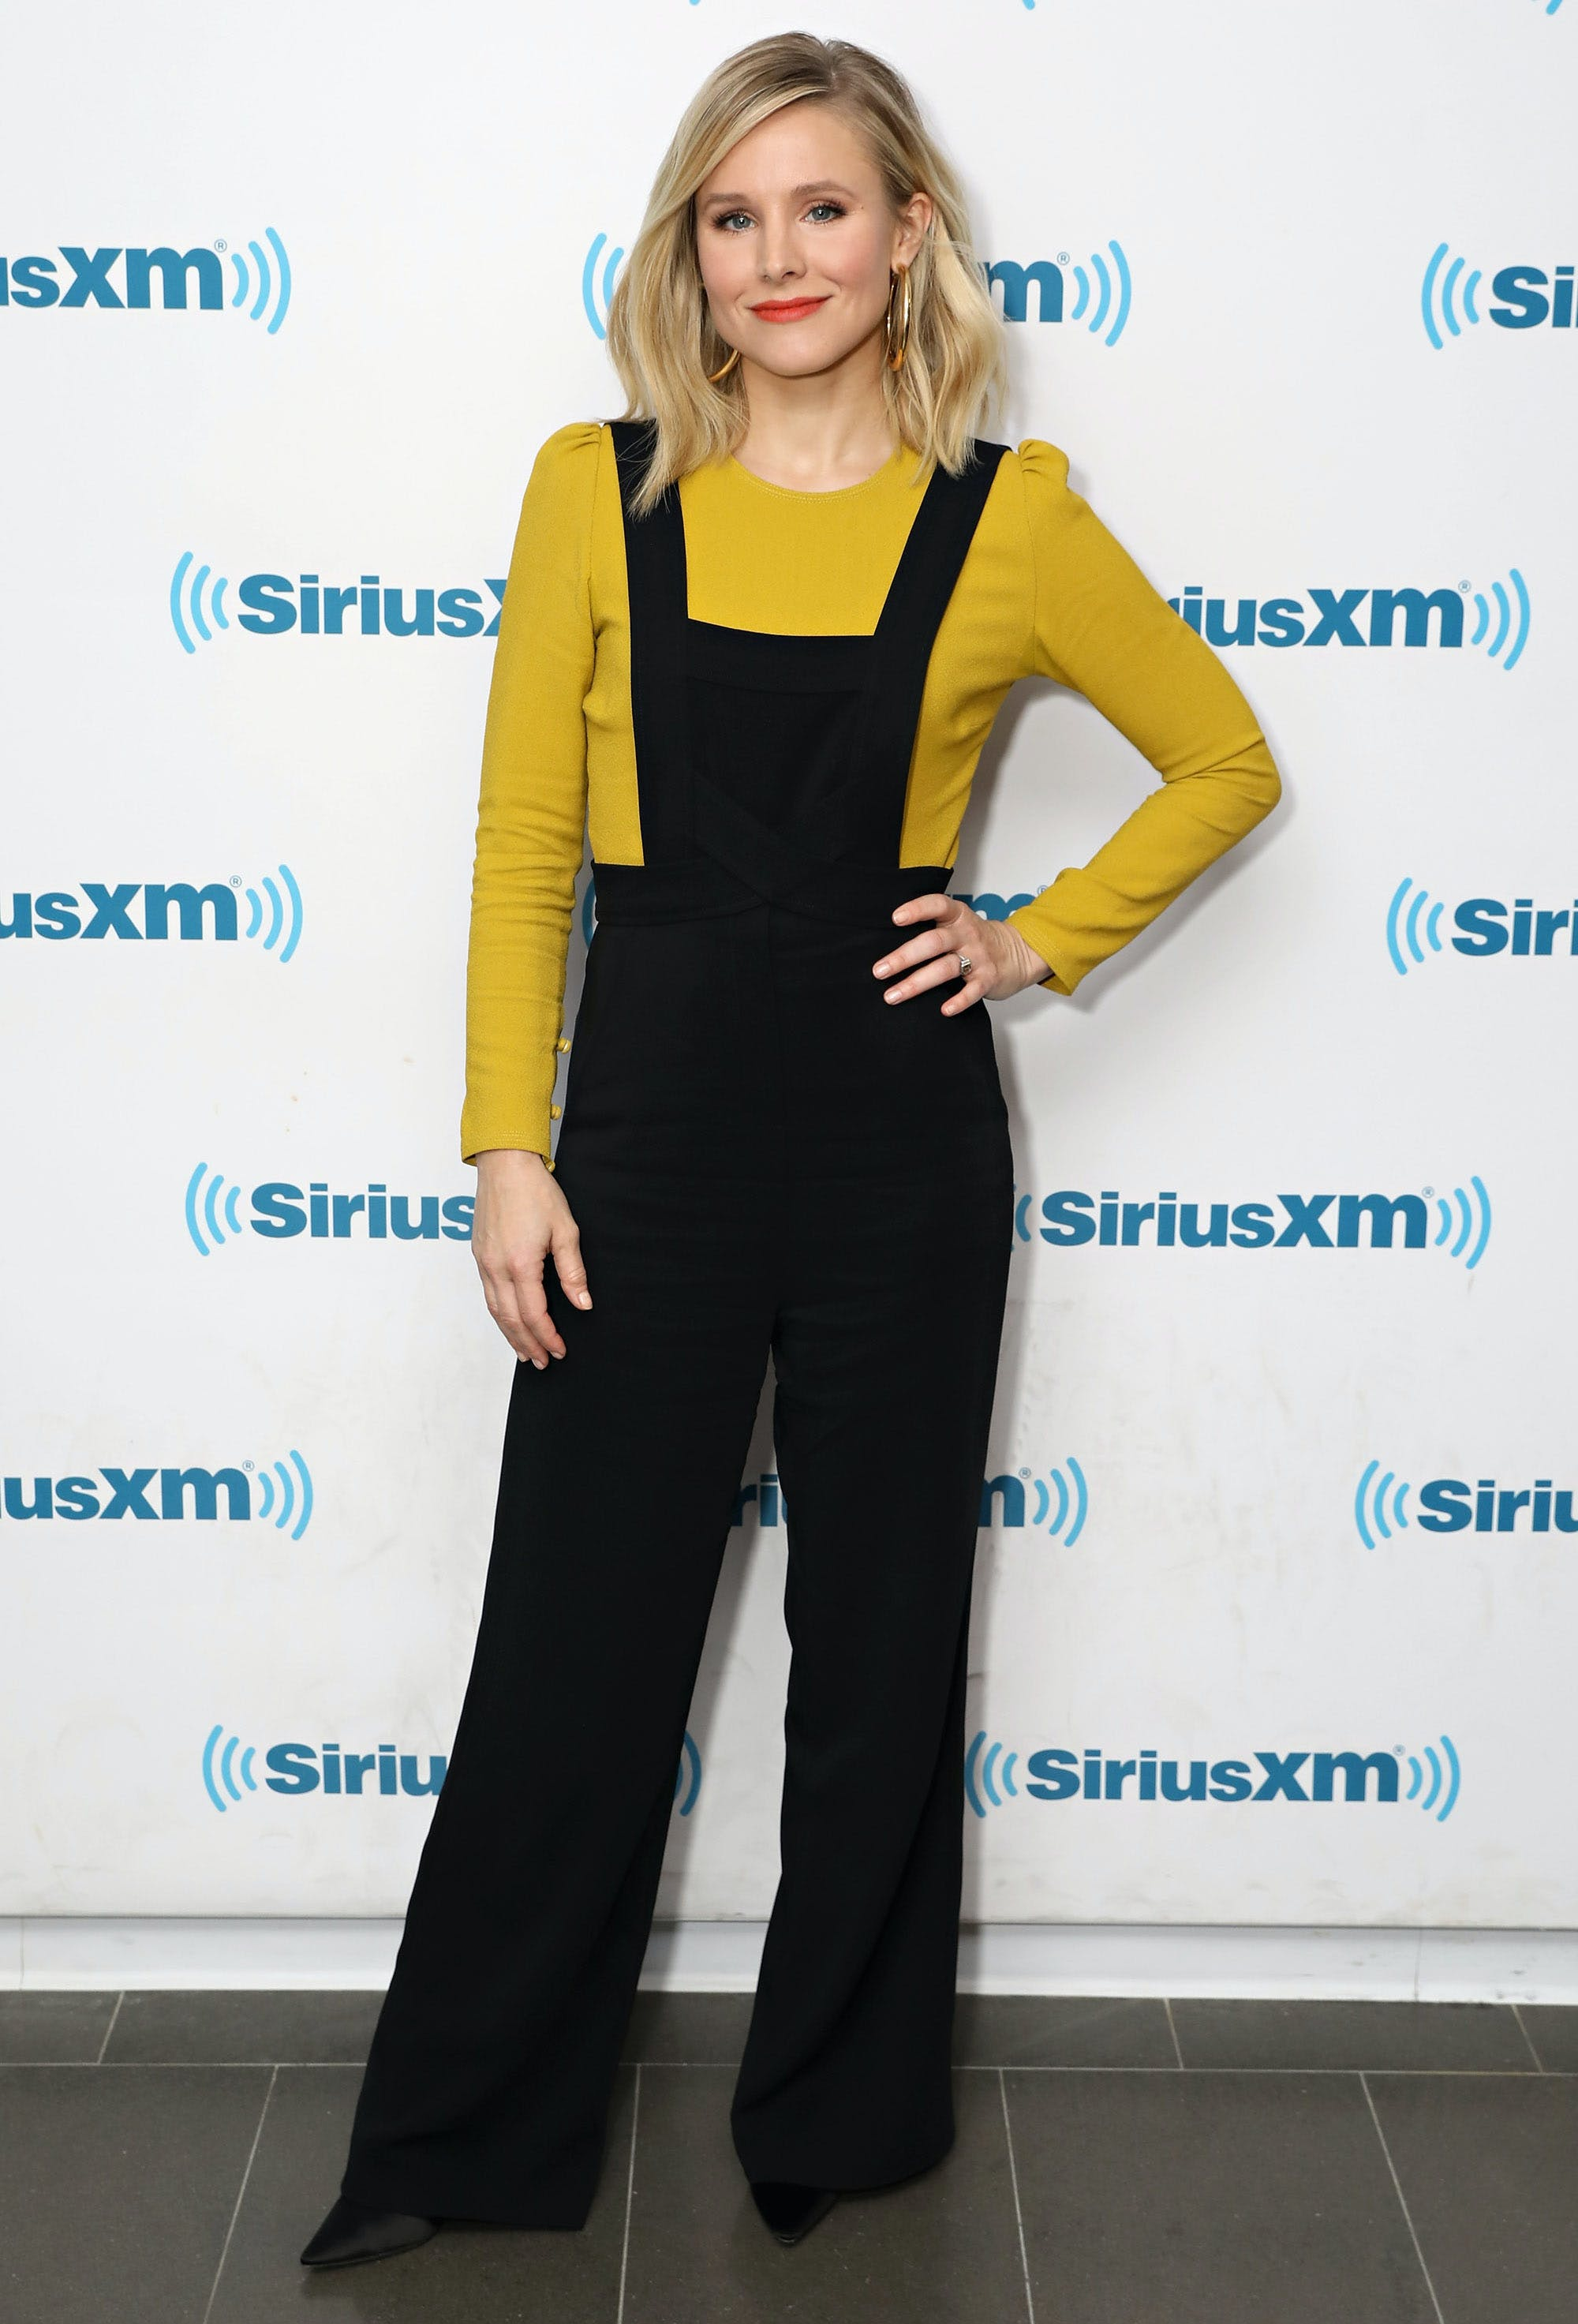 kristen bell wearing overalls and a long sleeve shirt